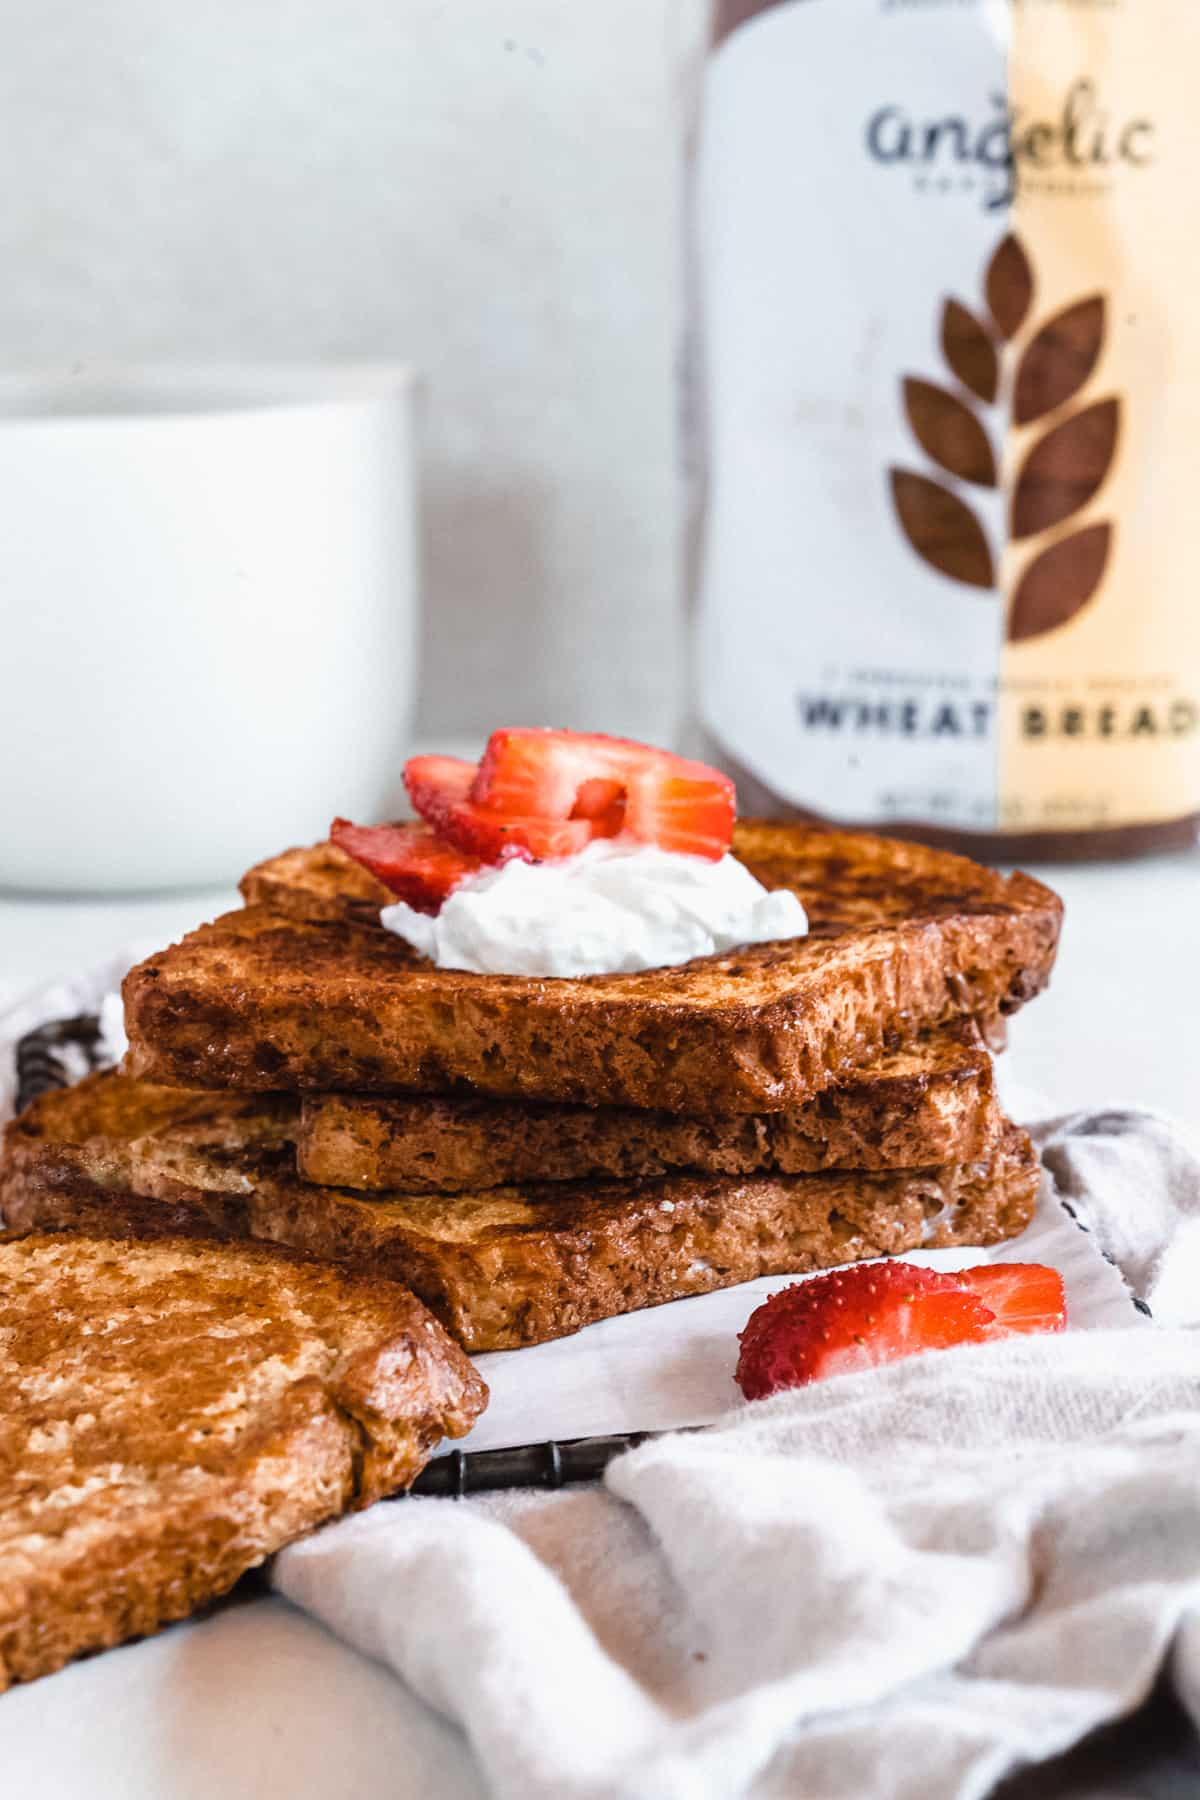 Side view image of three slices of French Toast stacked on parchment paper with a grey linen cloth underneath.  A coffee cup and loaf of Angelic Bakehouse bread is in the background.